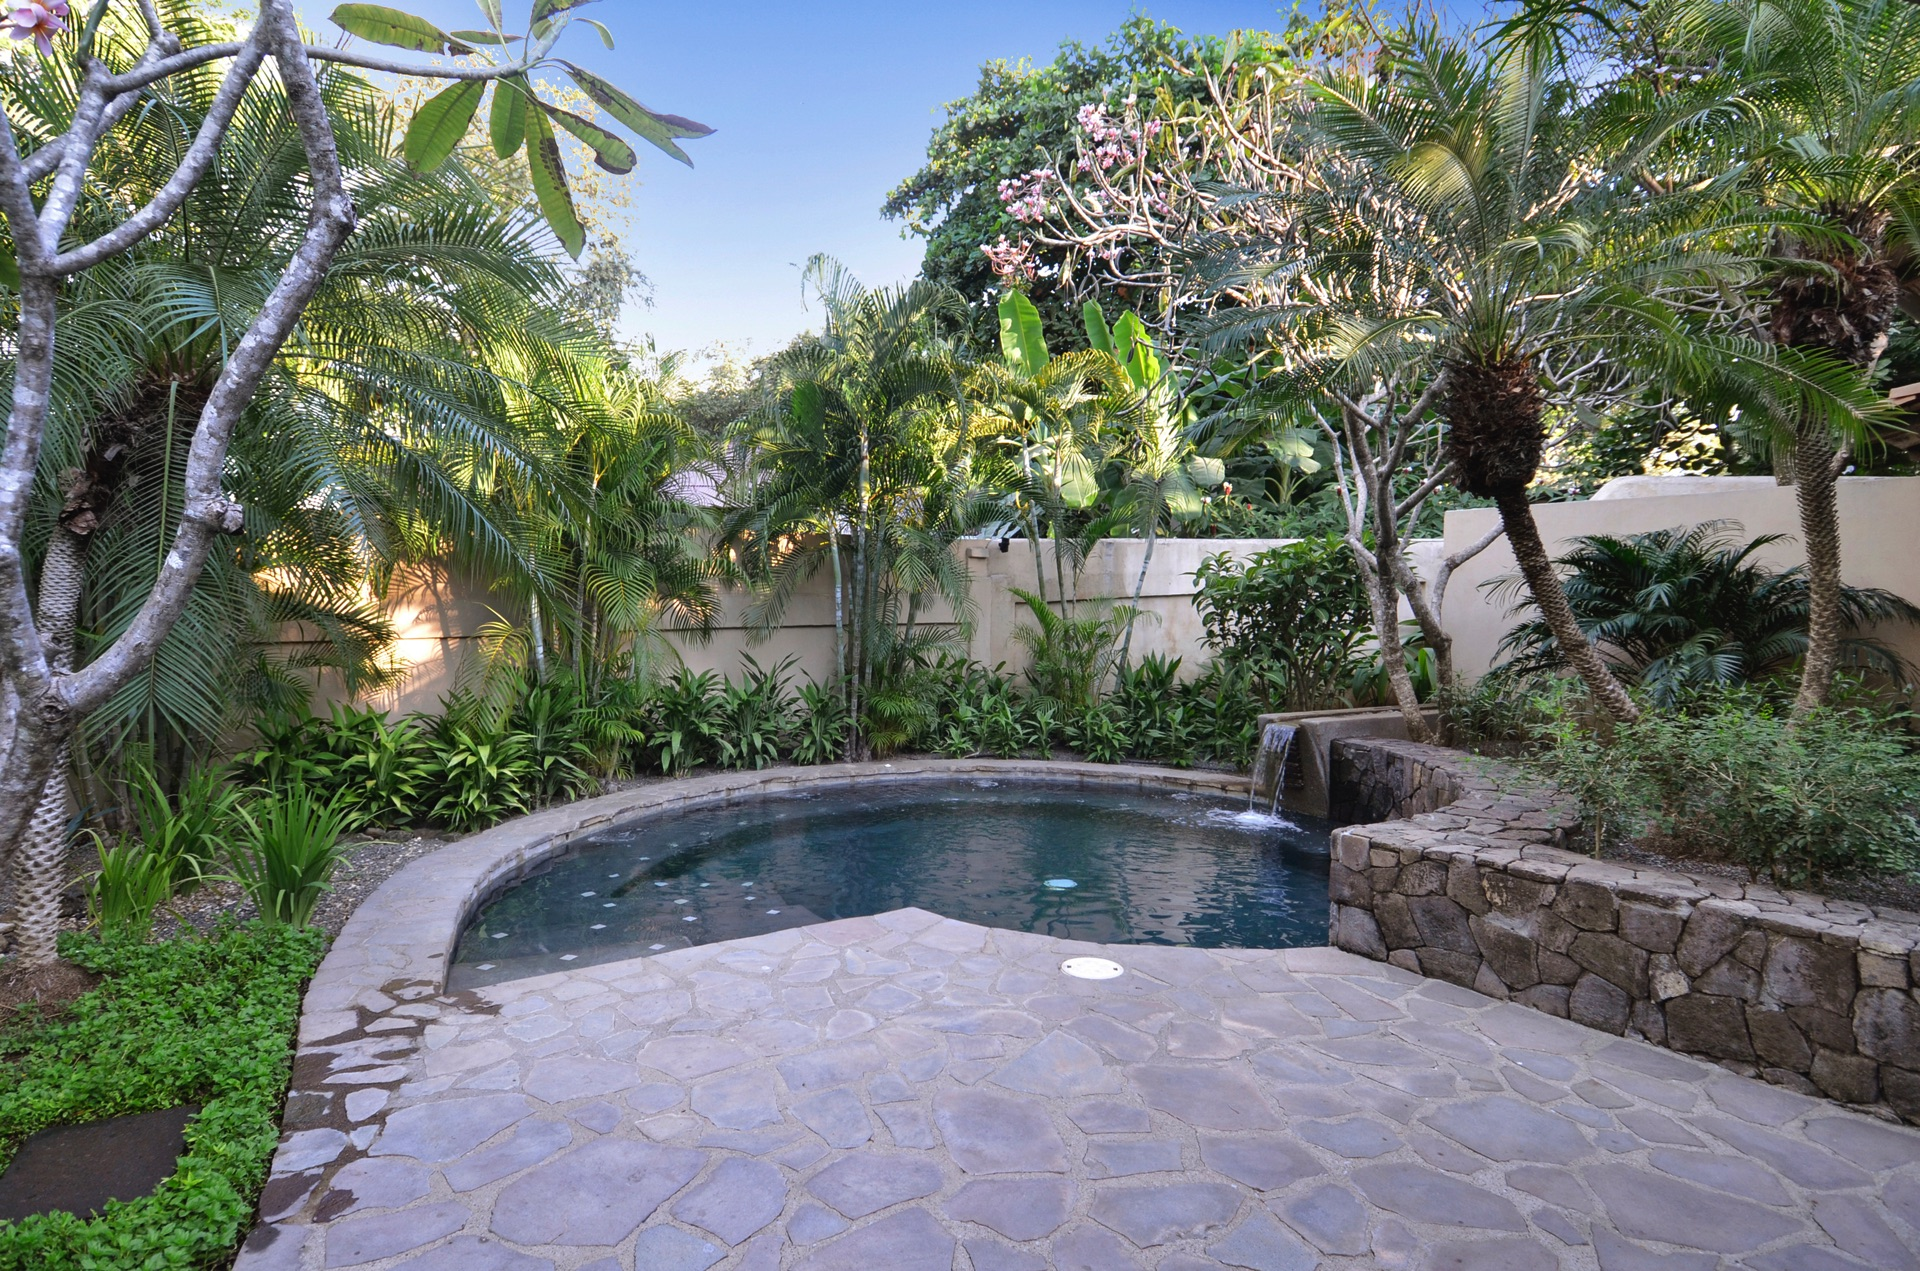 Swimming pool enclosed in stone terrace